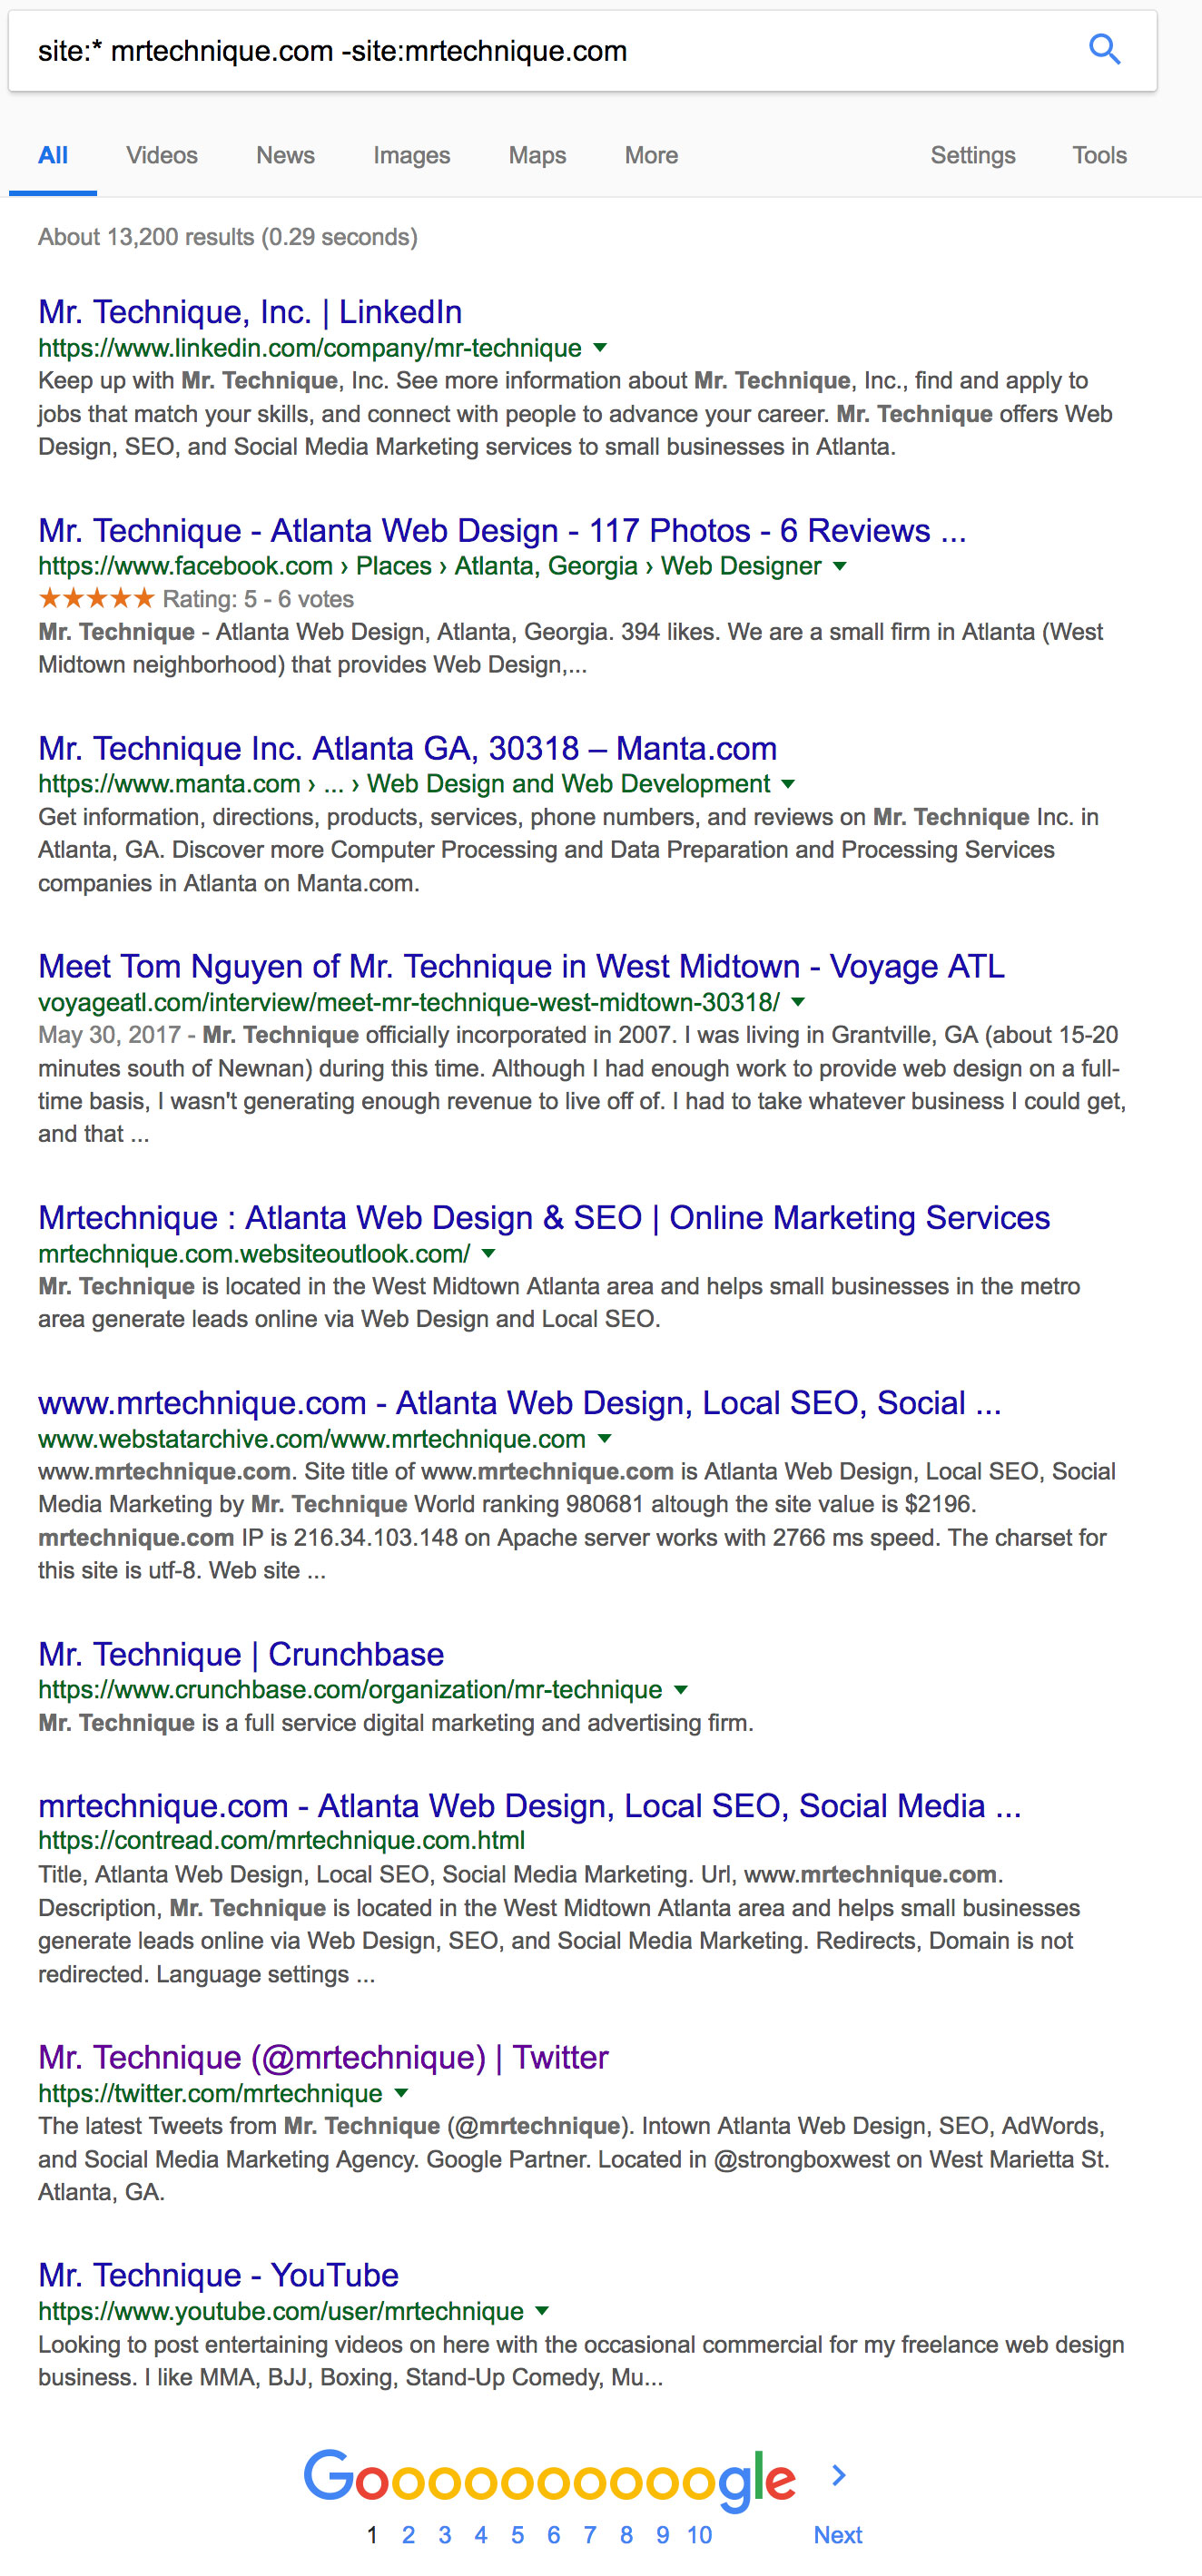 Google Search Query for mrtechnique.com backlinks that excludes results from mrtechnique.com